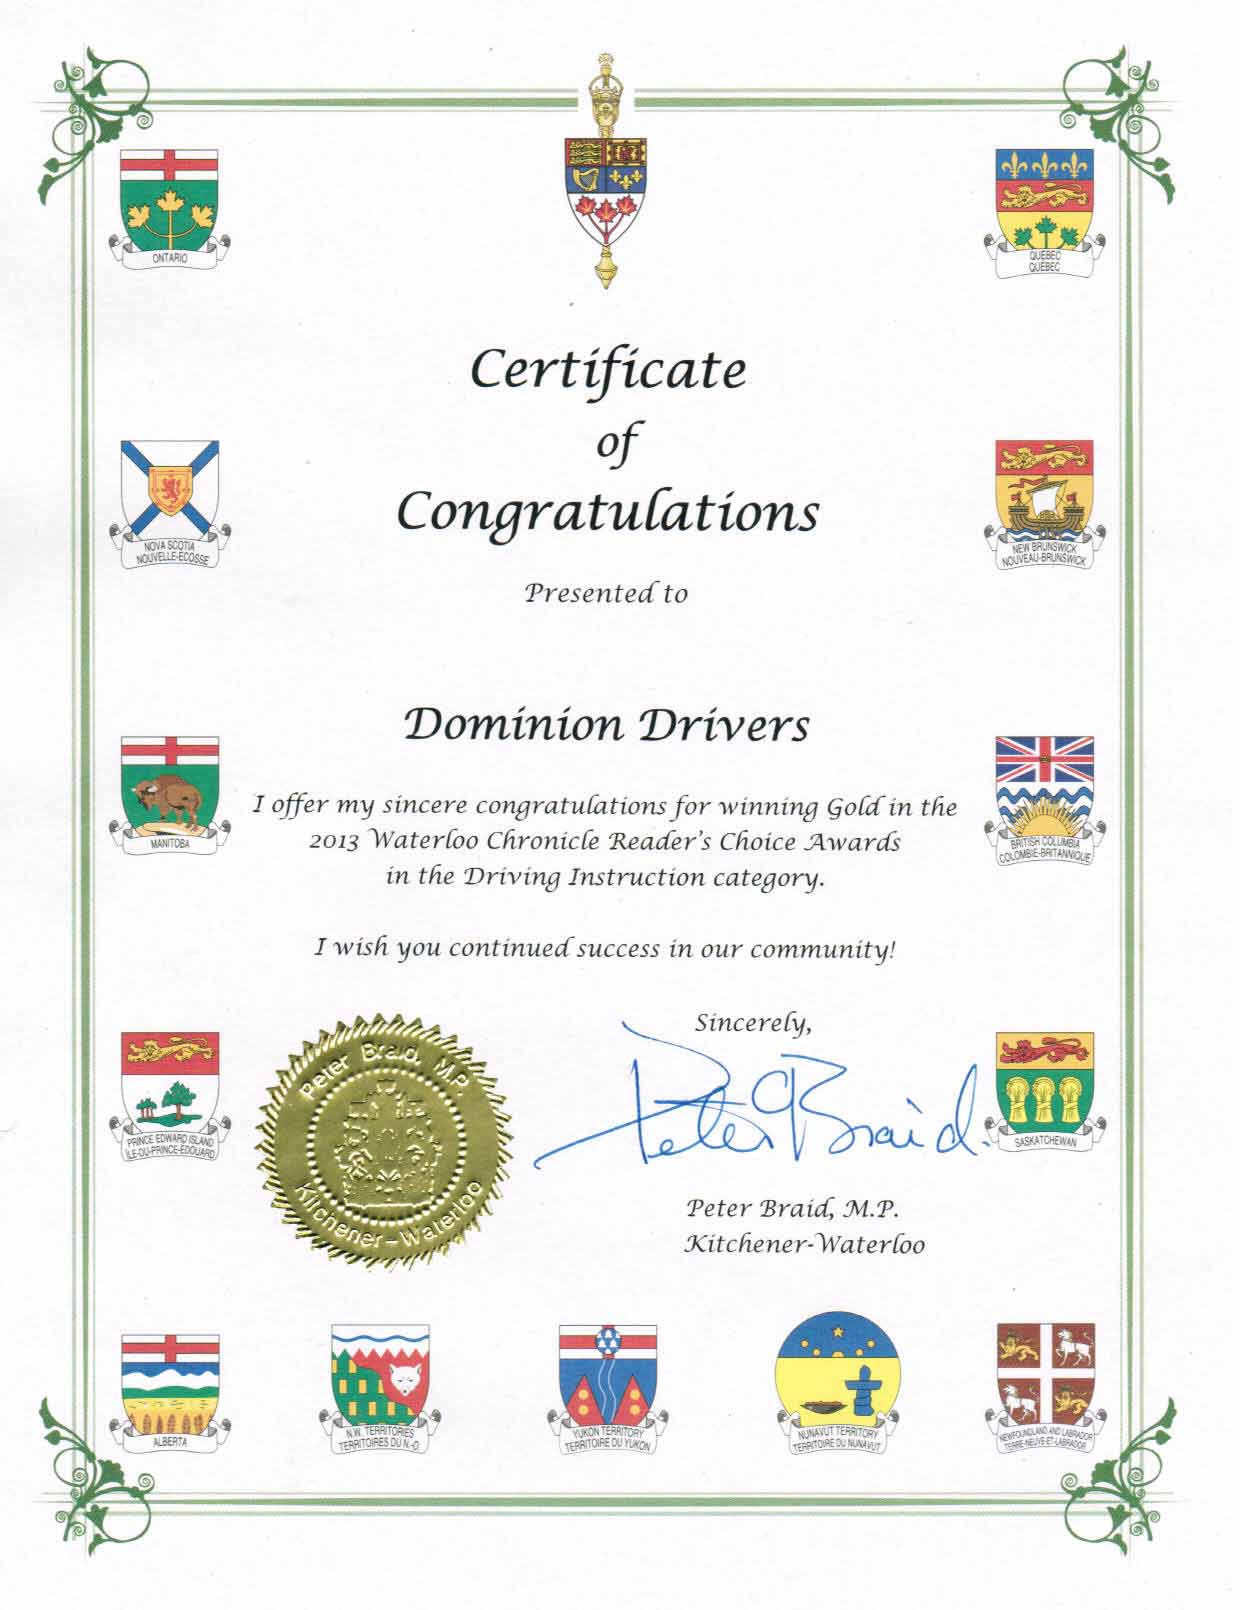 Awards & Certification of Dominion Driving Schools, Kitchener ...